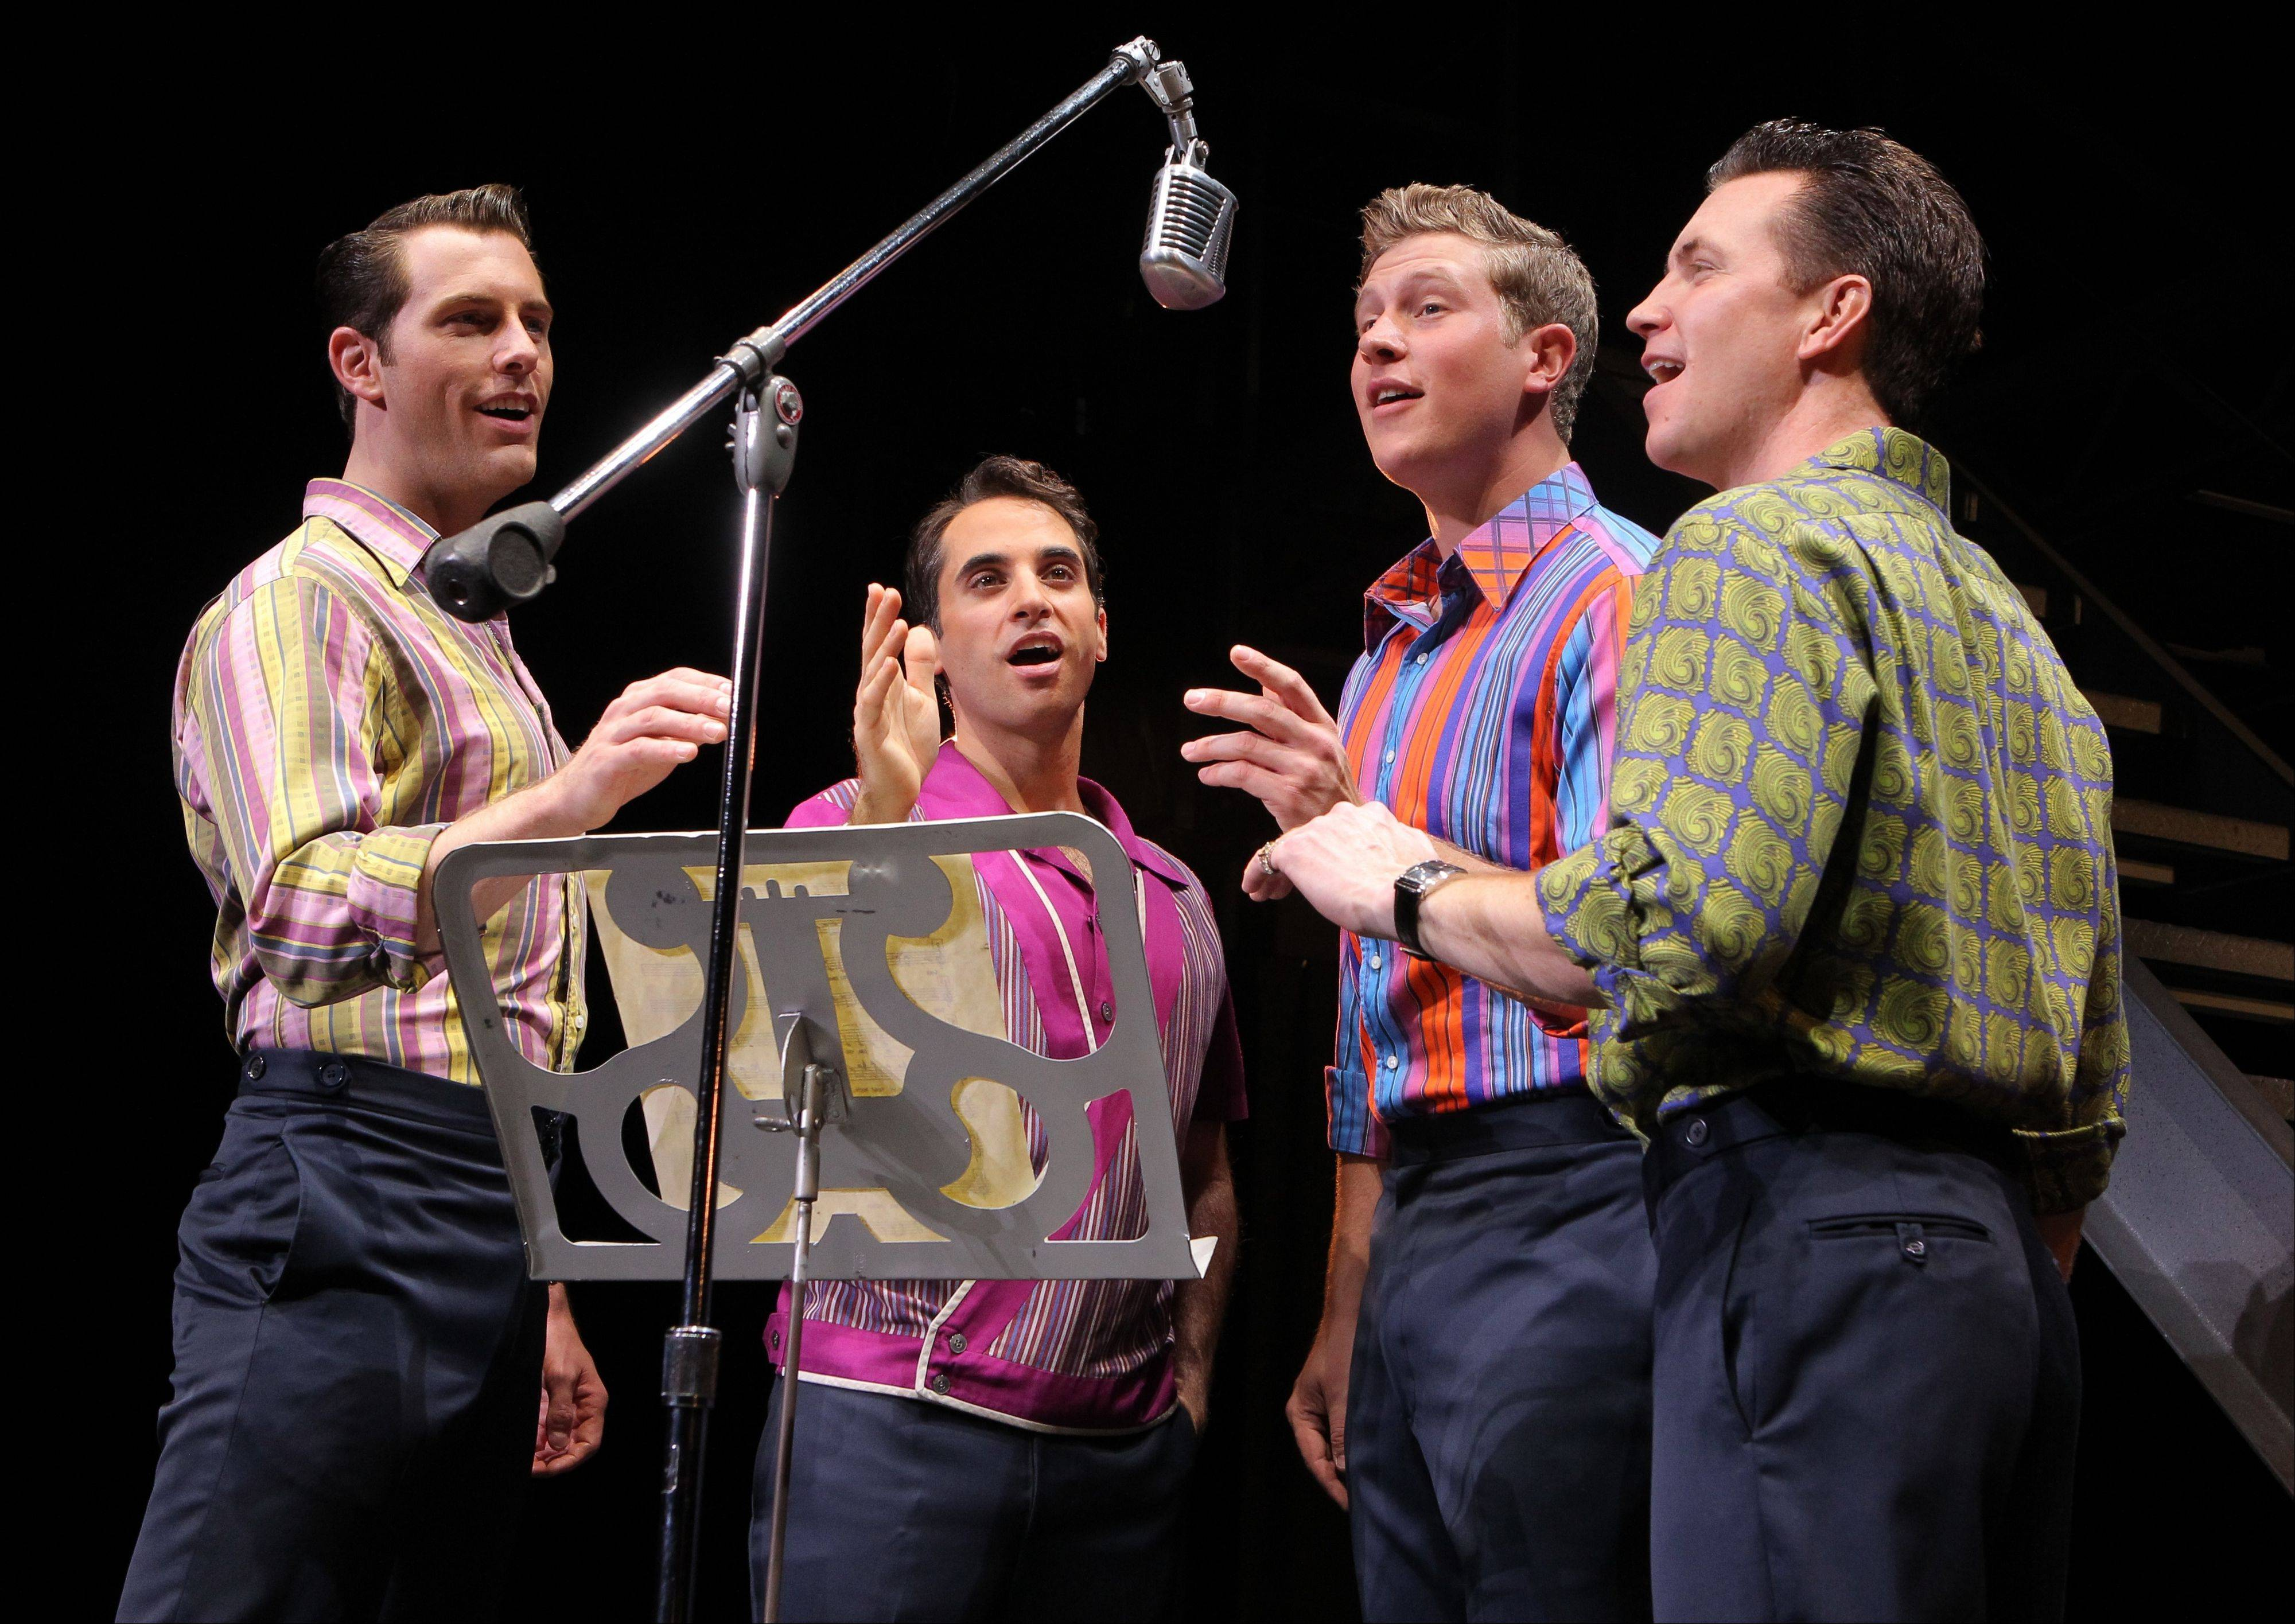 Nick Massi (Michael Lomenda), Frankie Valli (Joseph Leo Bwarie), Bob Gaudio (Preston Truman Boyd) and Tommy DeVito (John Gardiner) rise to fame as the Four Seasons in